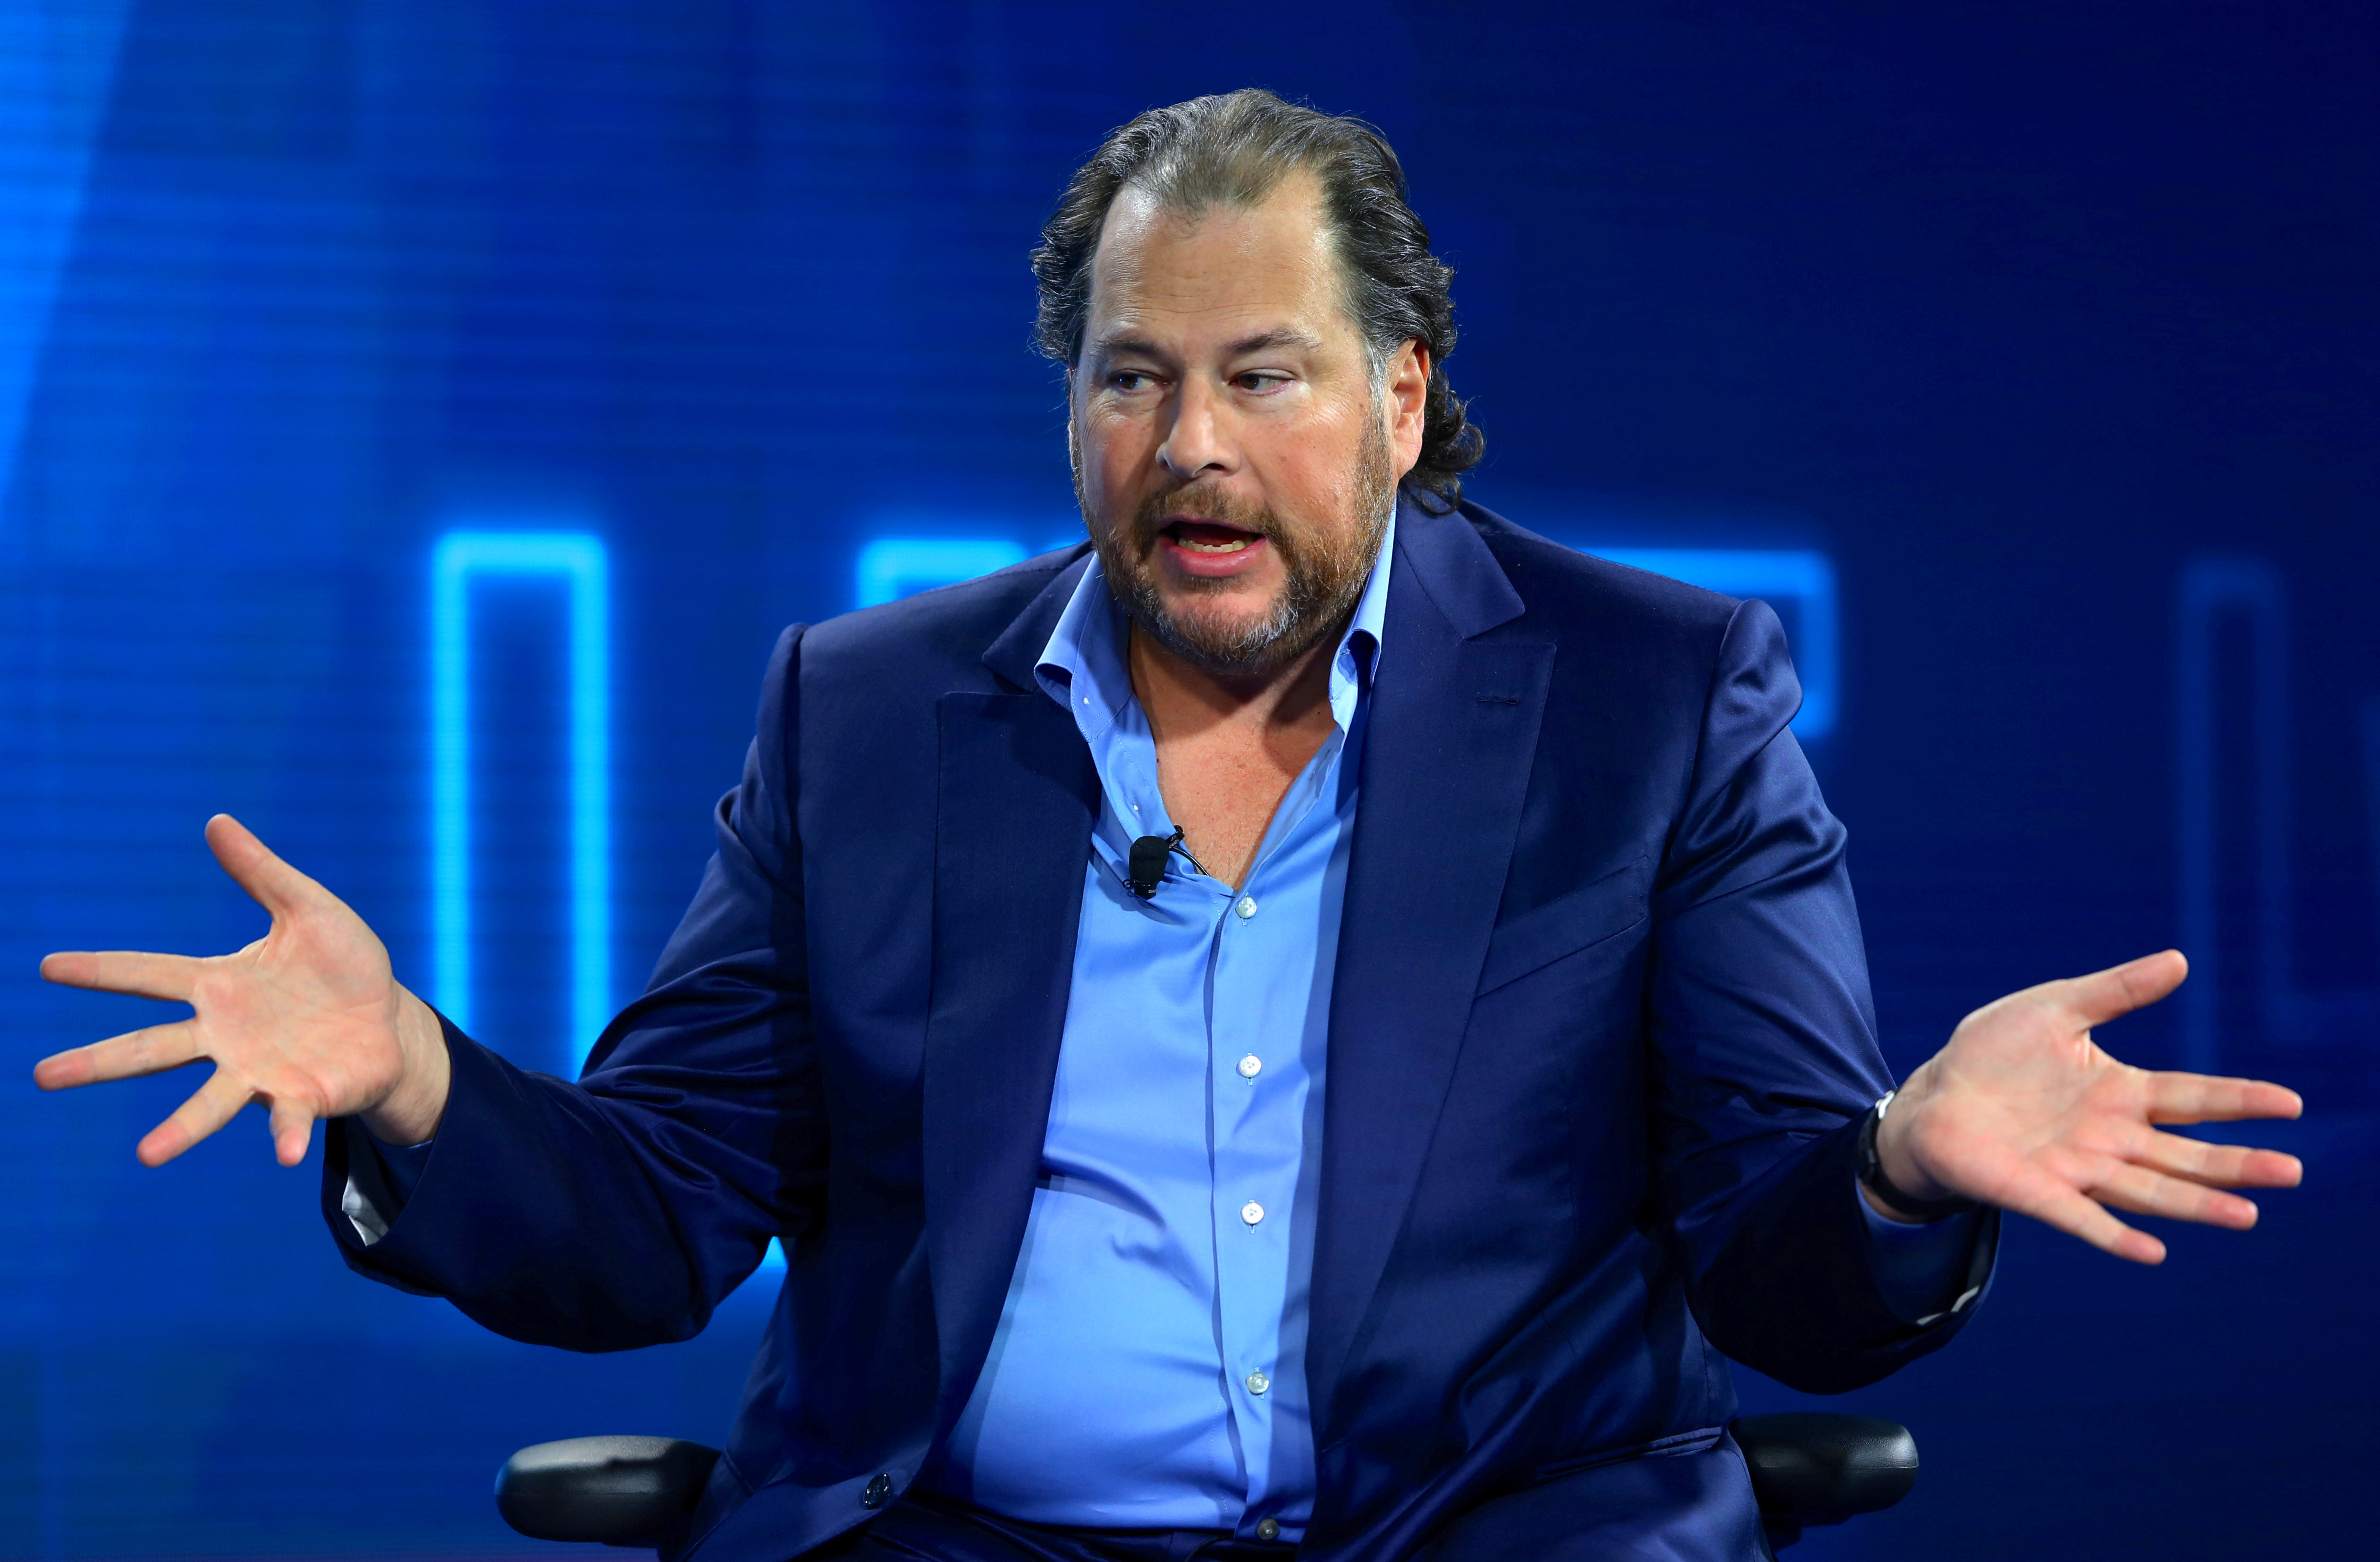 Marc Benioff, chairman and CEO of Salesforce, speaks at the WSJD Live conference in Laguna Beach